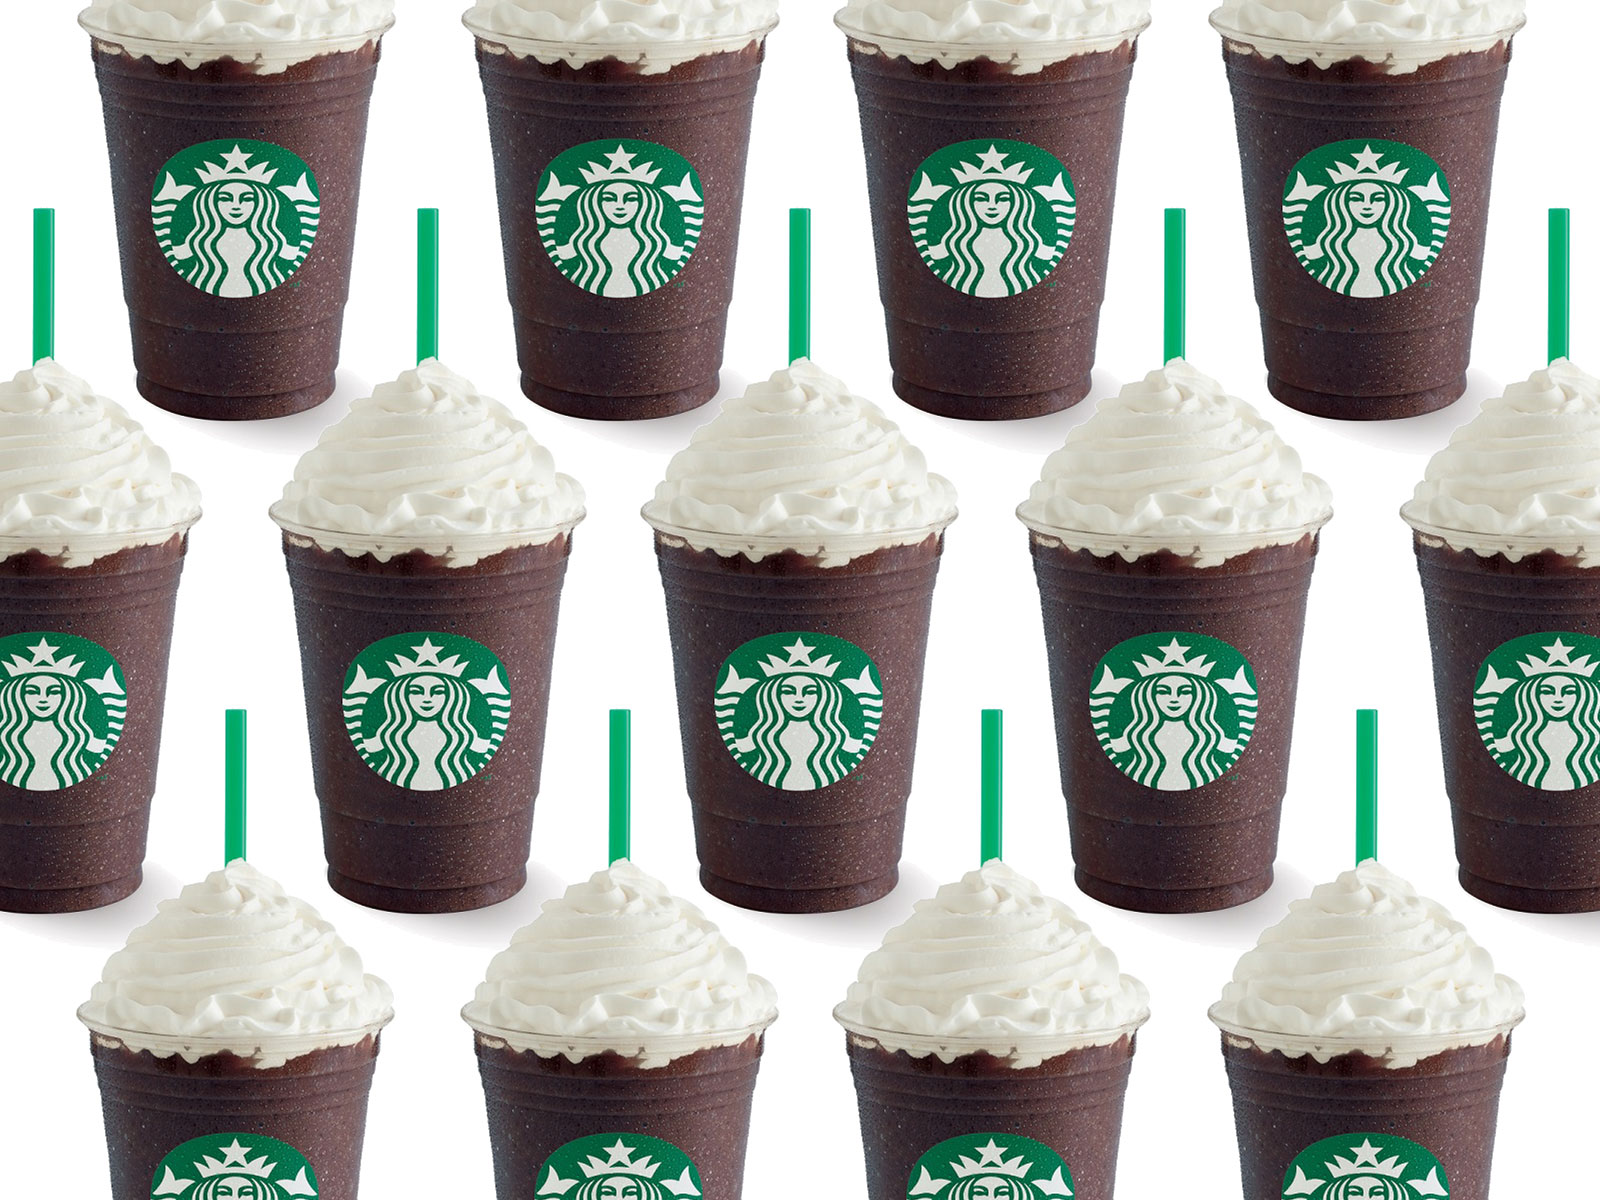 Starbucks' Dark Chocolate Frappuccino Is Exclusive to Target